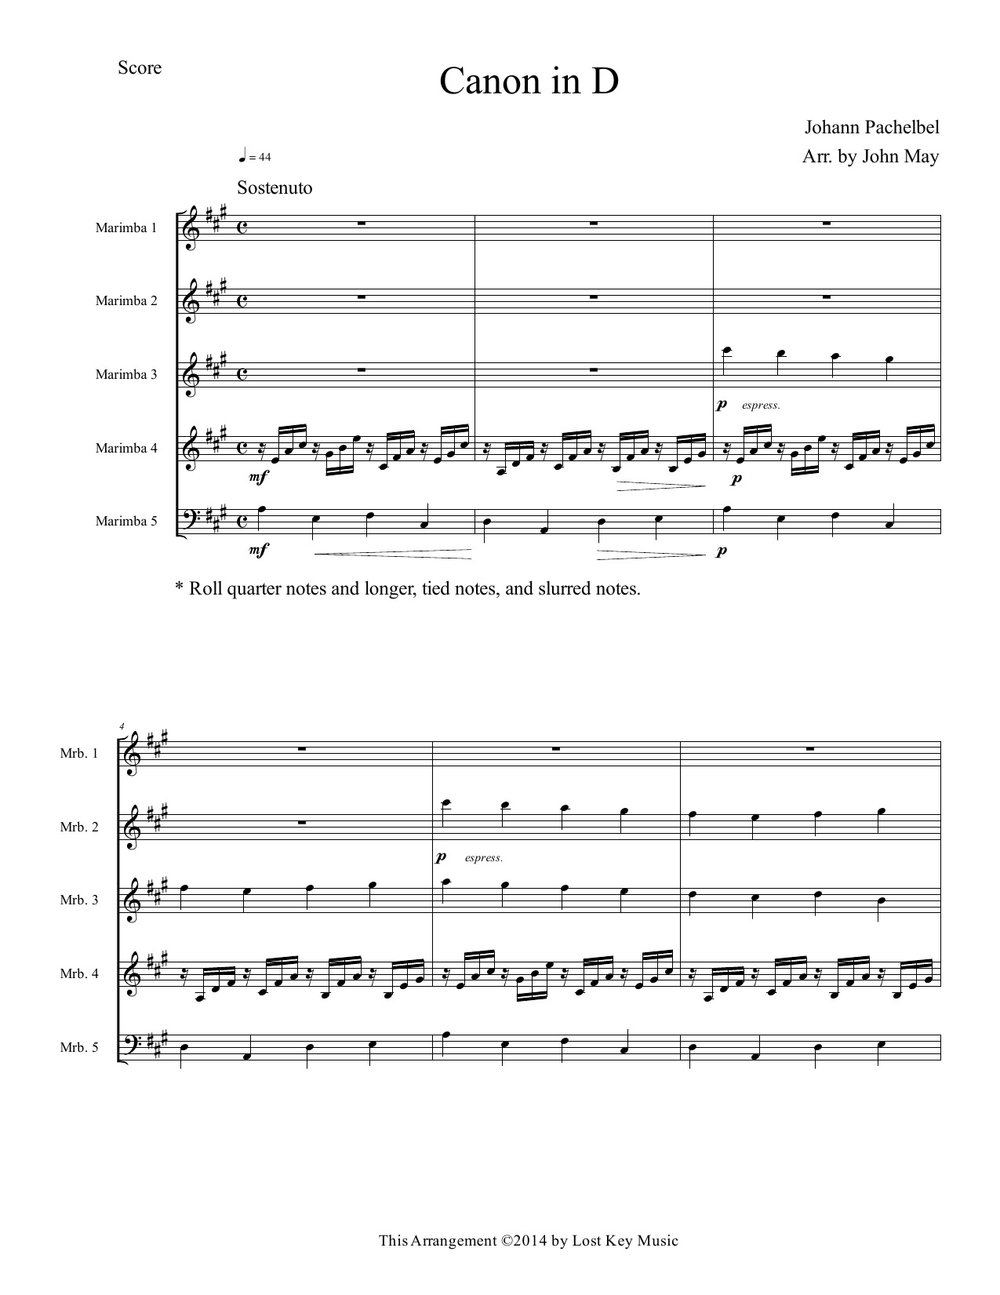 Canon in D (arr. in A) sample.jpg